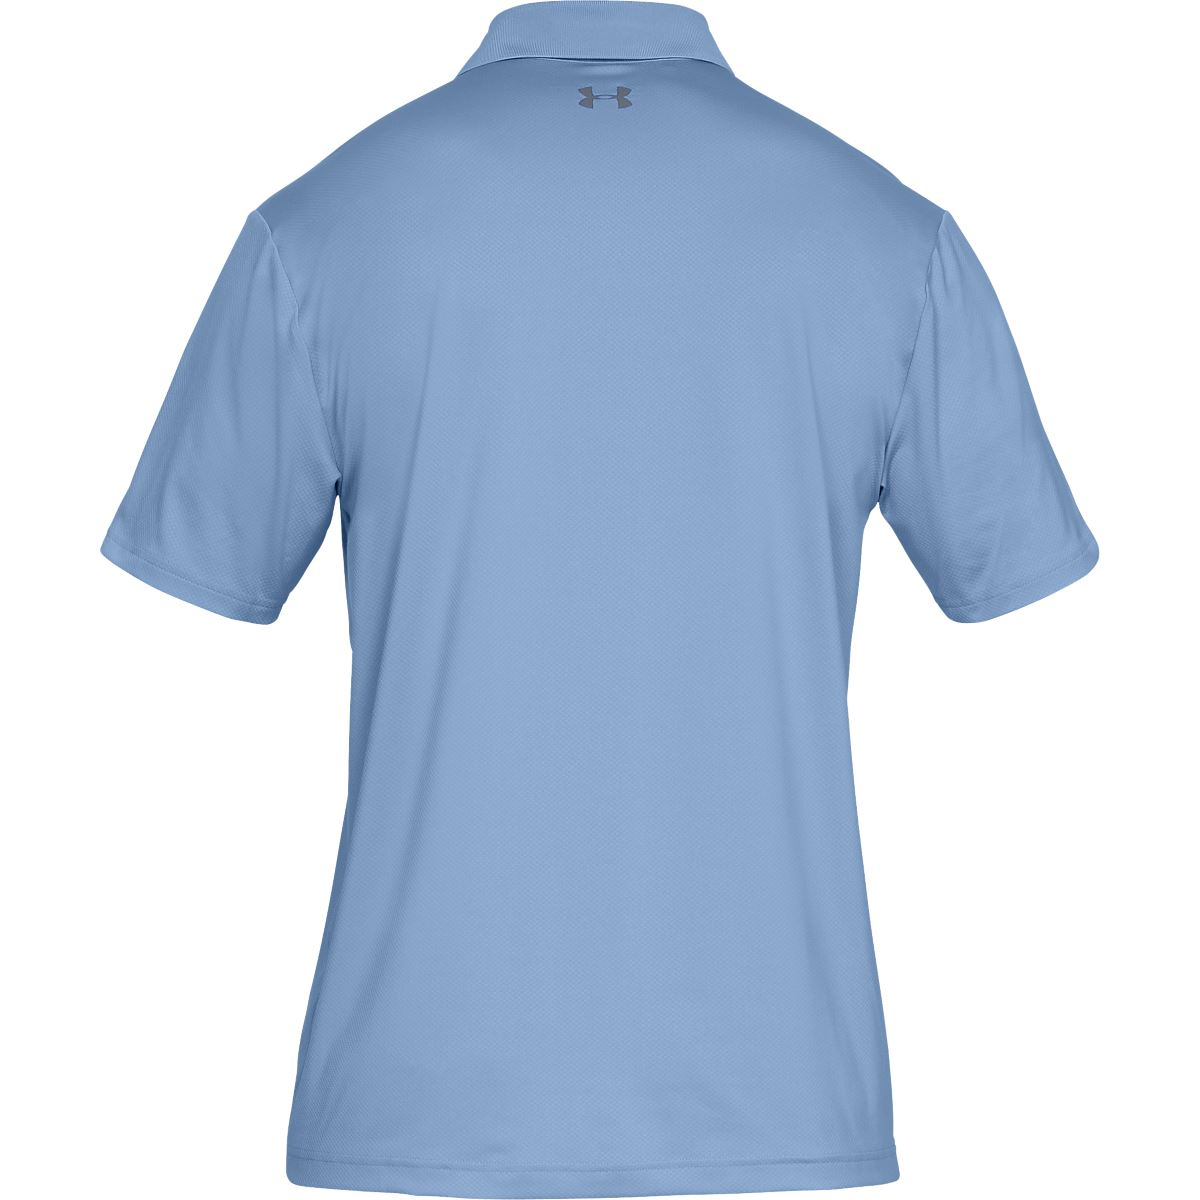 UNDER-ARMOUR-UA-PERFORMANCE-MENS-GOLF-POLO-SHIRT-2-0-SMOOTH-STRETCH thumbnail 23